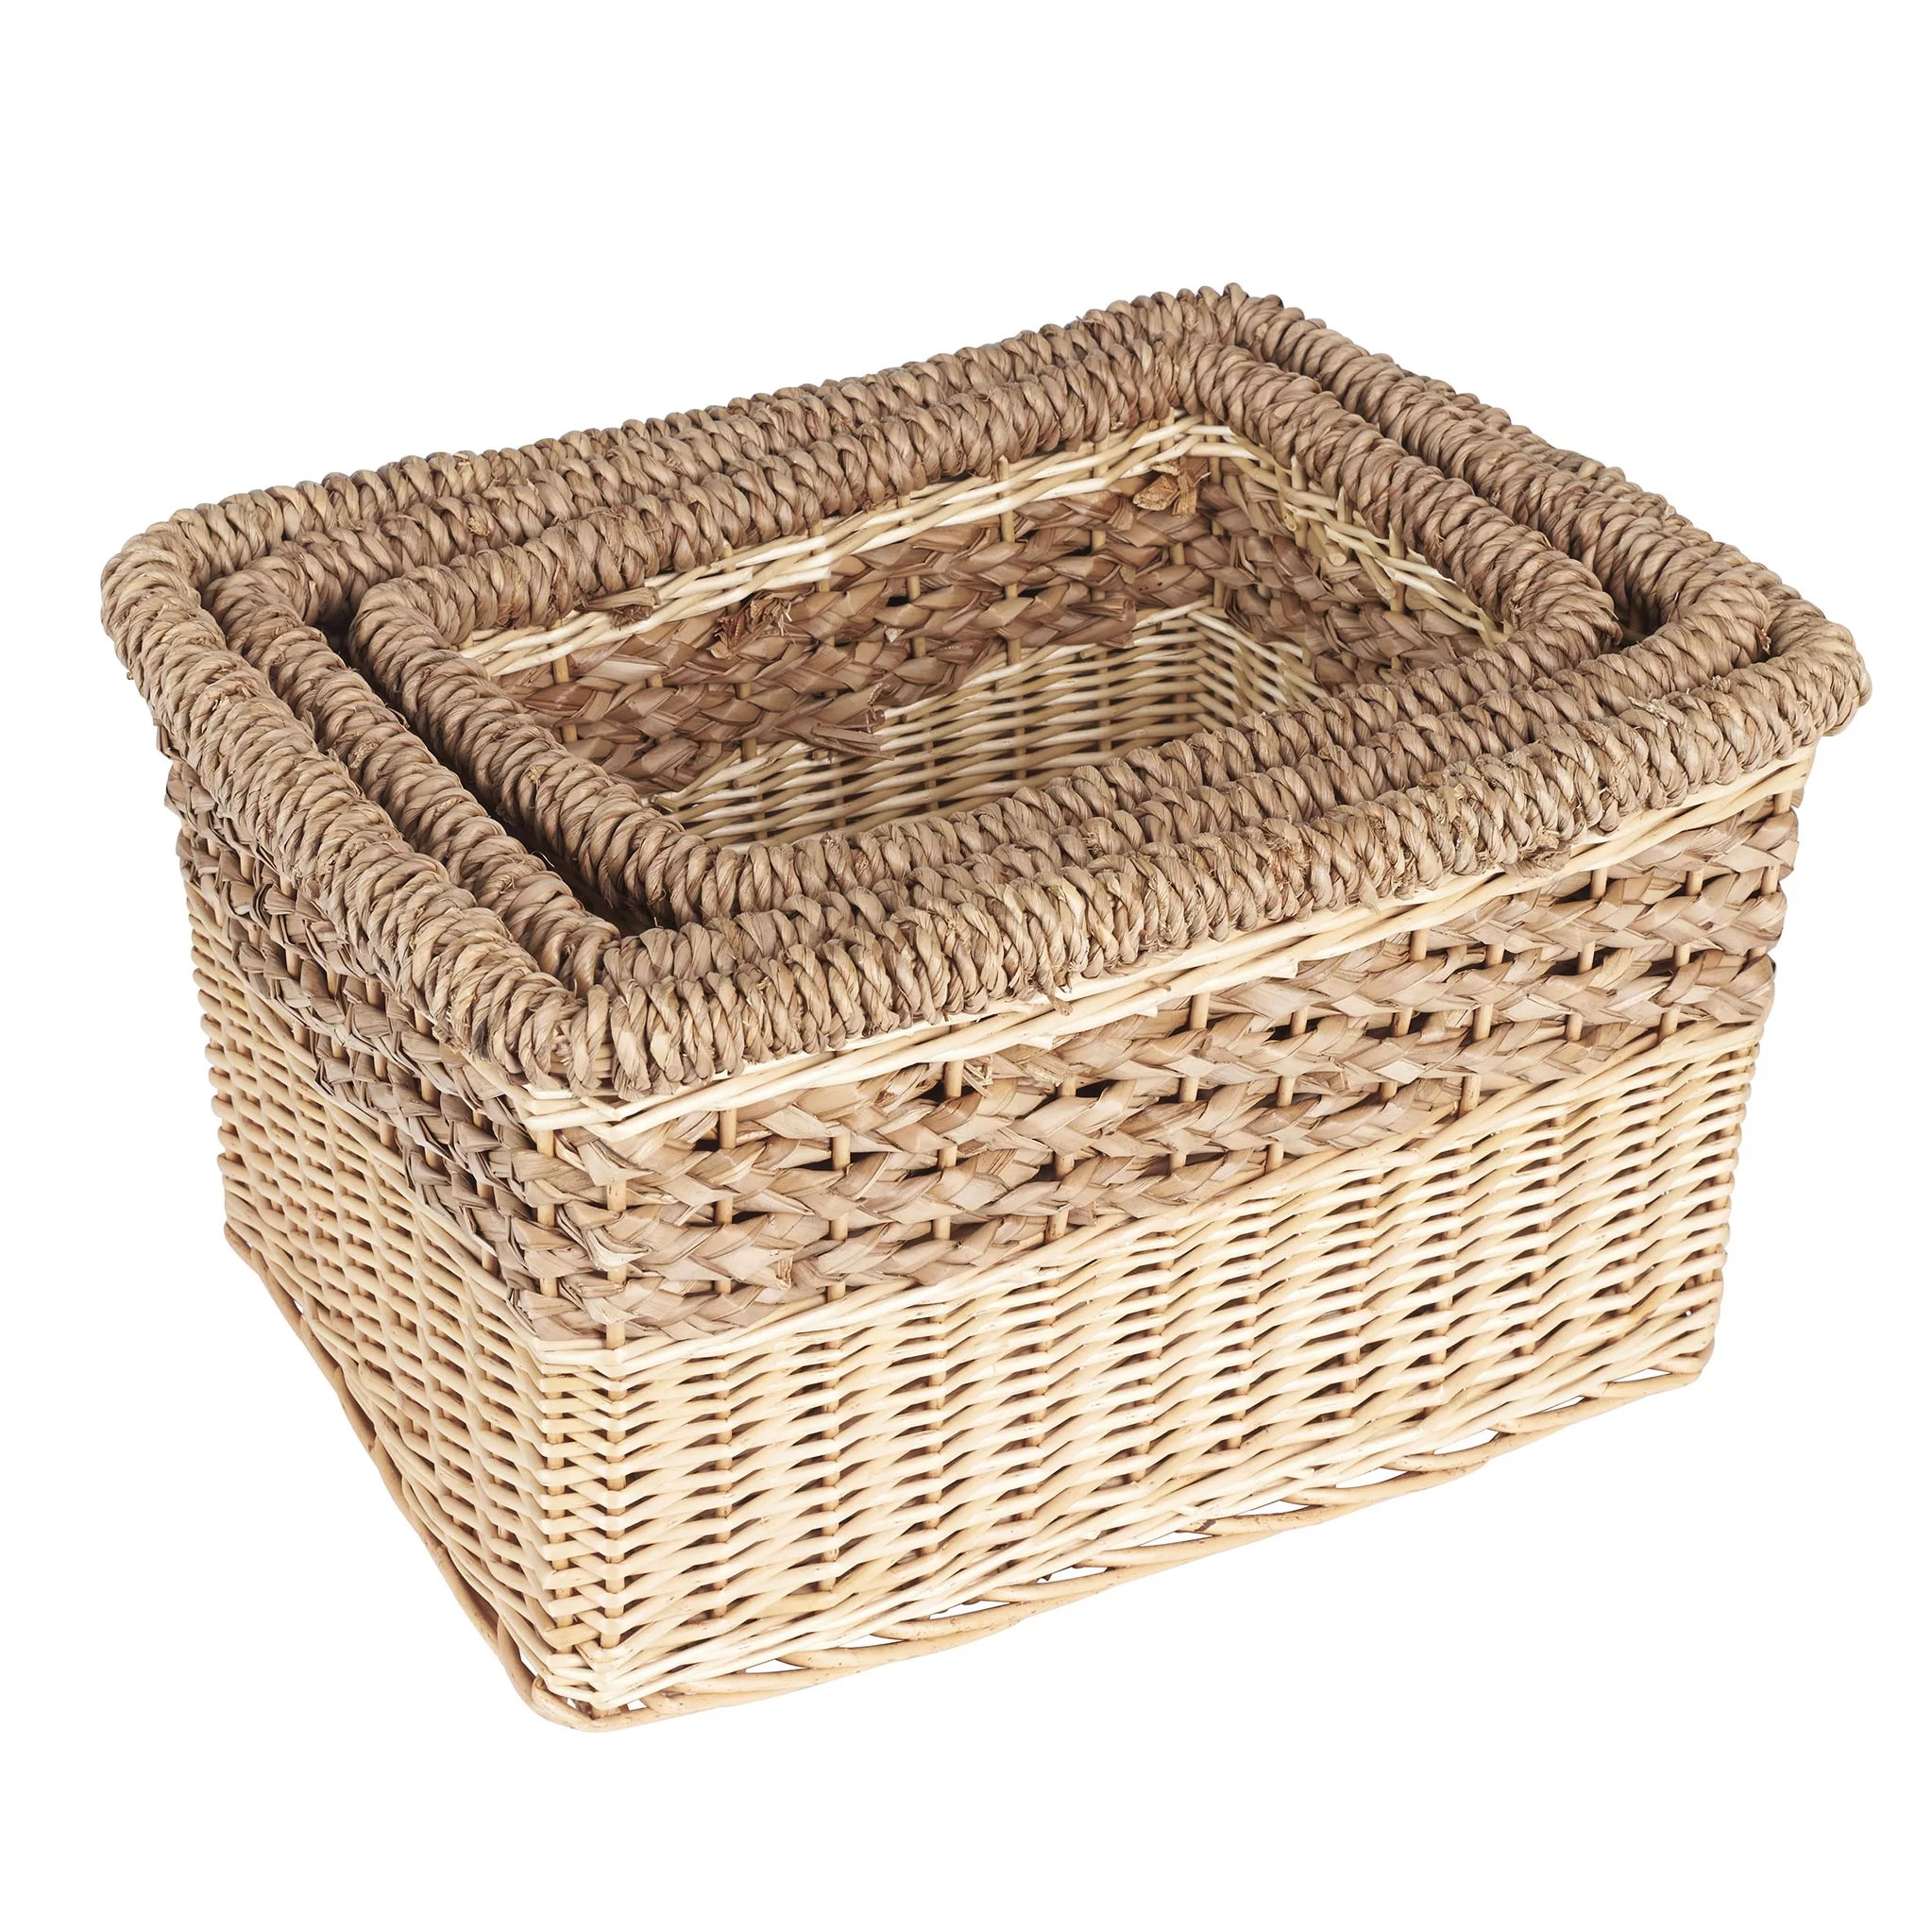 Fancy Baskets Household Essentials 3 Piece Starling Decorative Storage